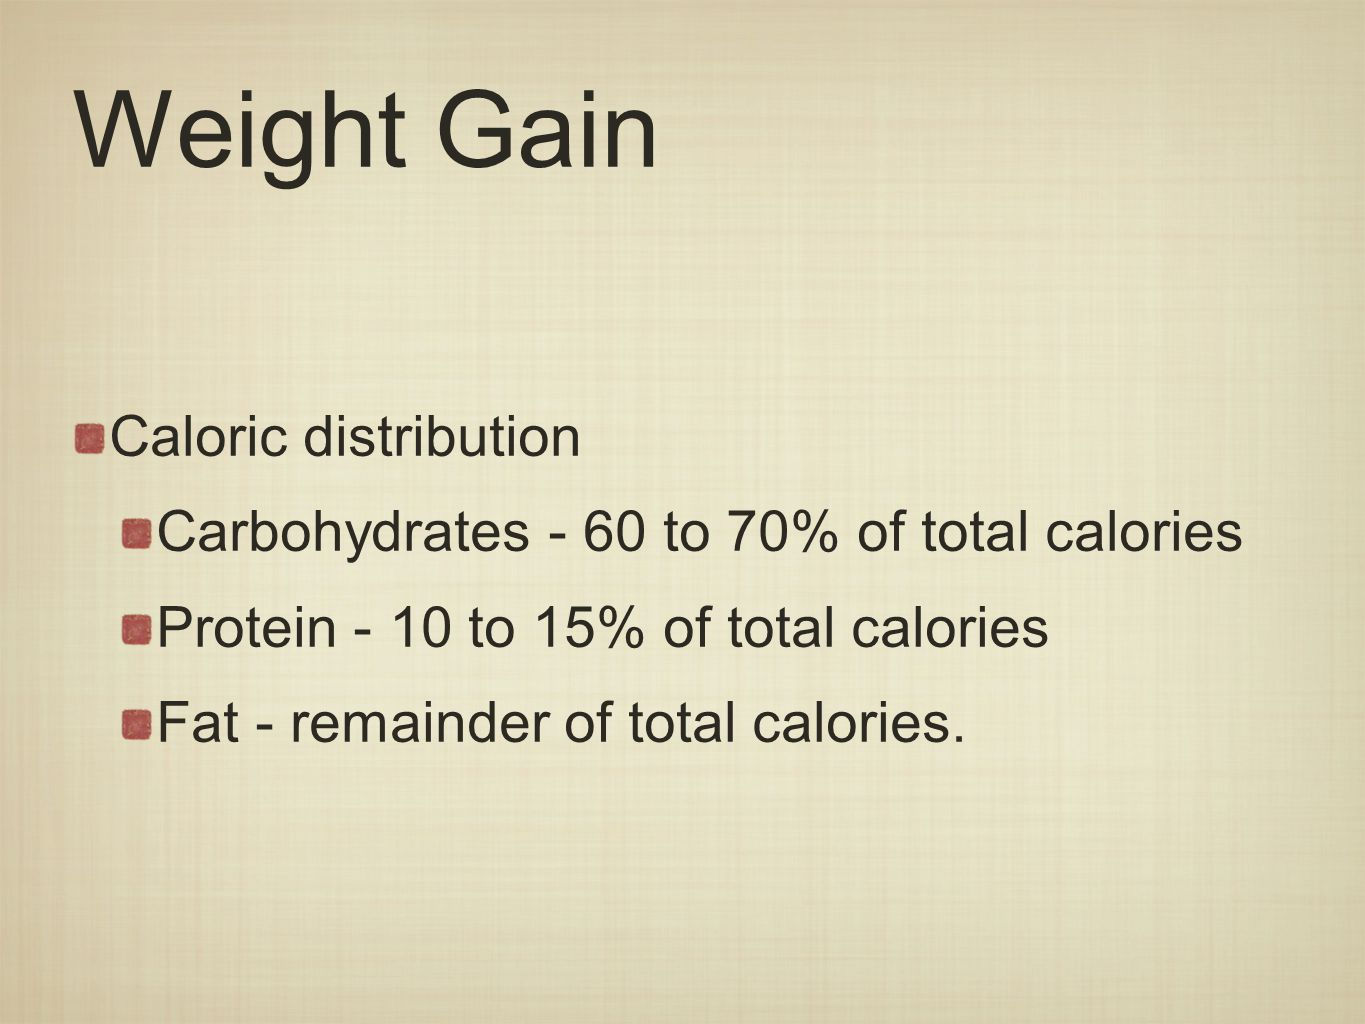 Caloric distribution Carbohydrates - 60 to 70% of total calories Protein - 10 to 15% of total calories Fat - remainder of total calories.